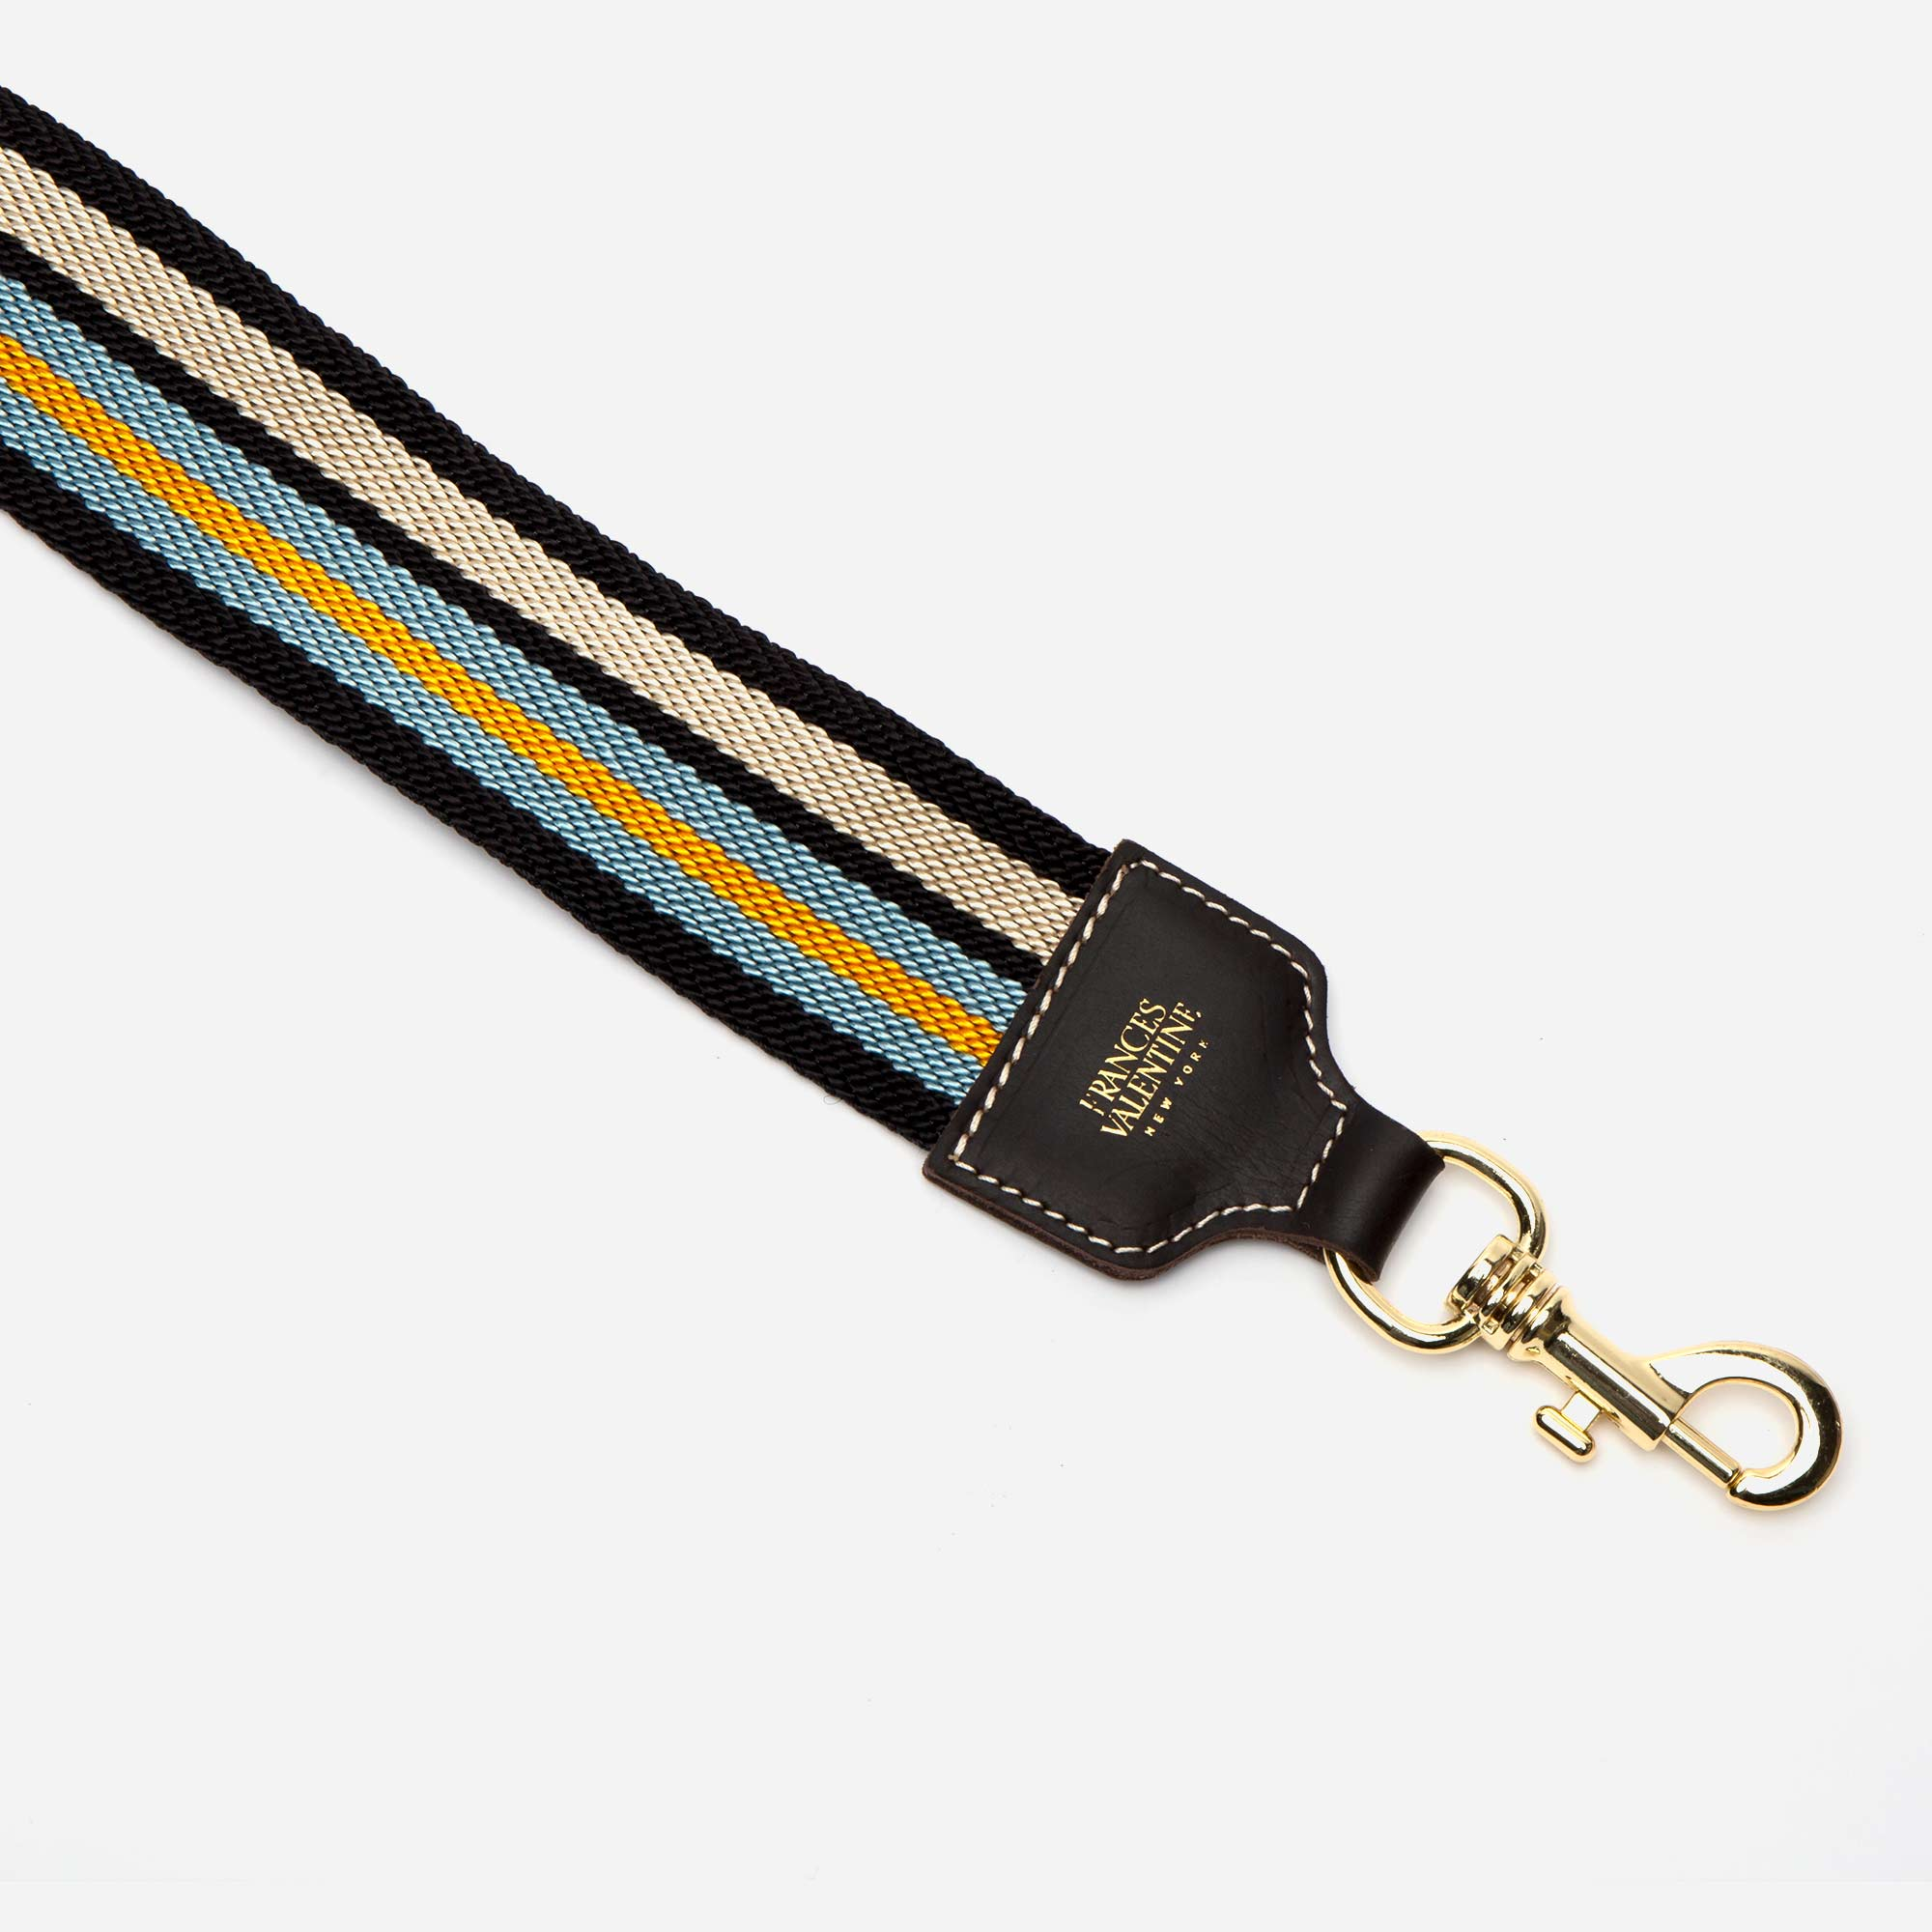 McCartney Guitar Strap Sky Blue Yellow - Frances Valentine